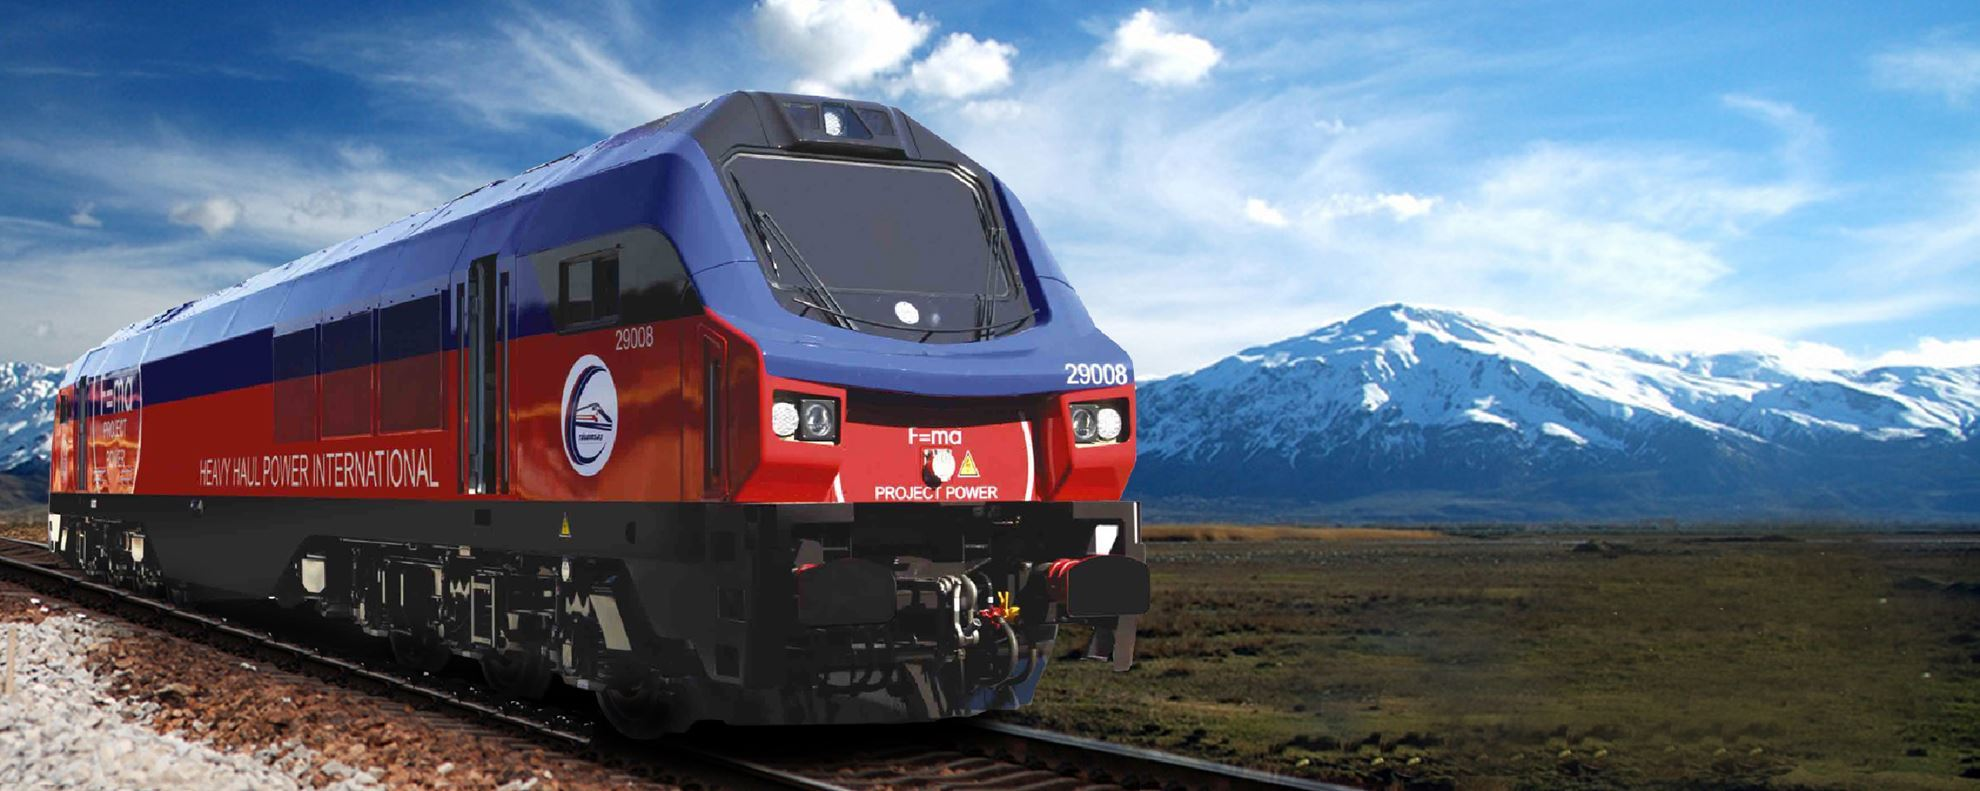 Picture of General Electric Locomotives